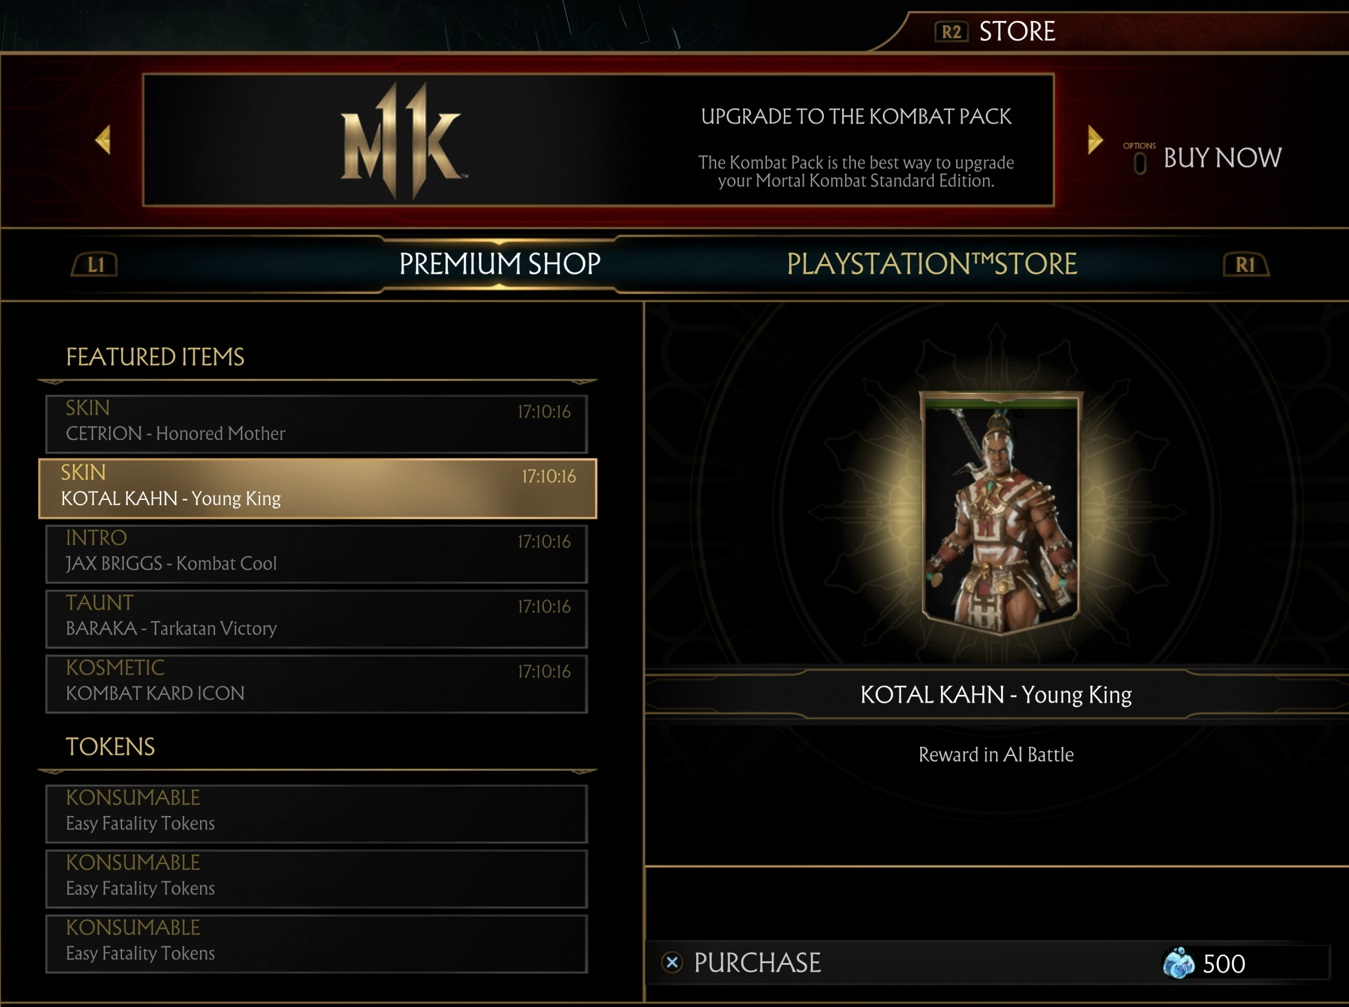 What You Need To Know About Mortal Kombat 11 S Premium Shop And